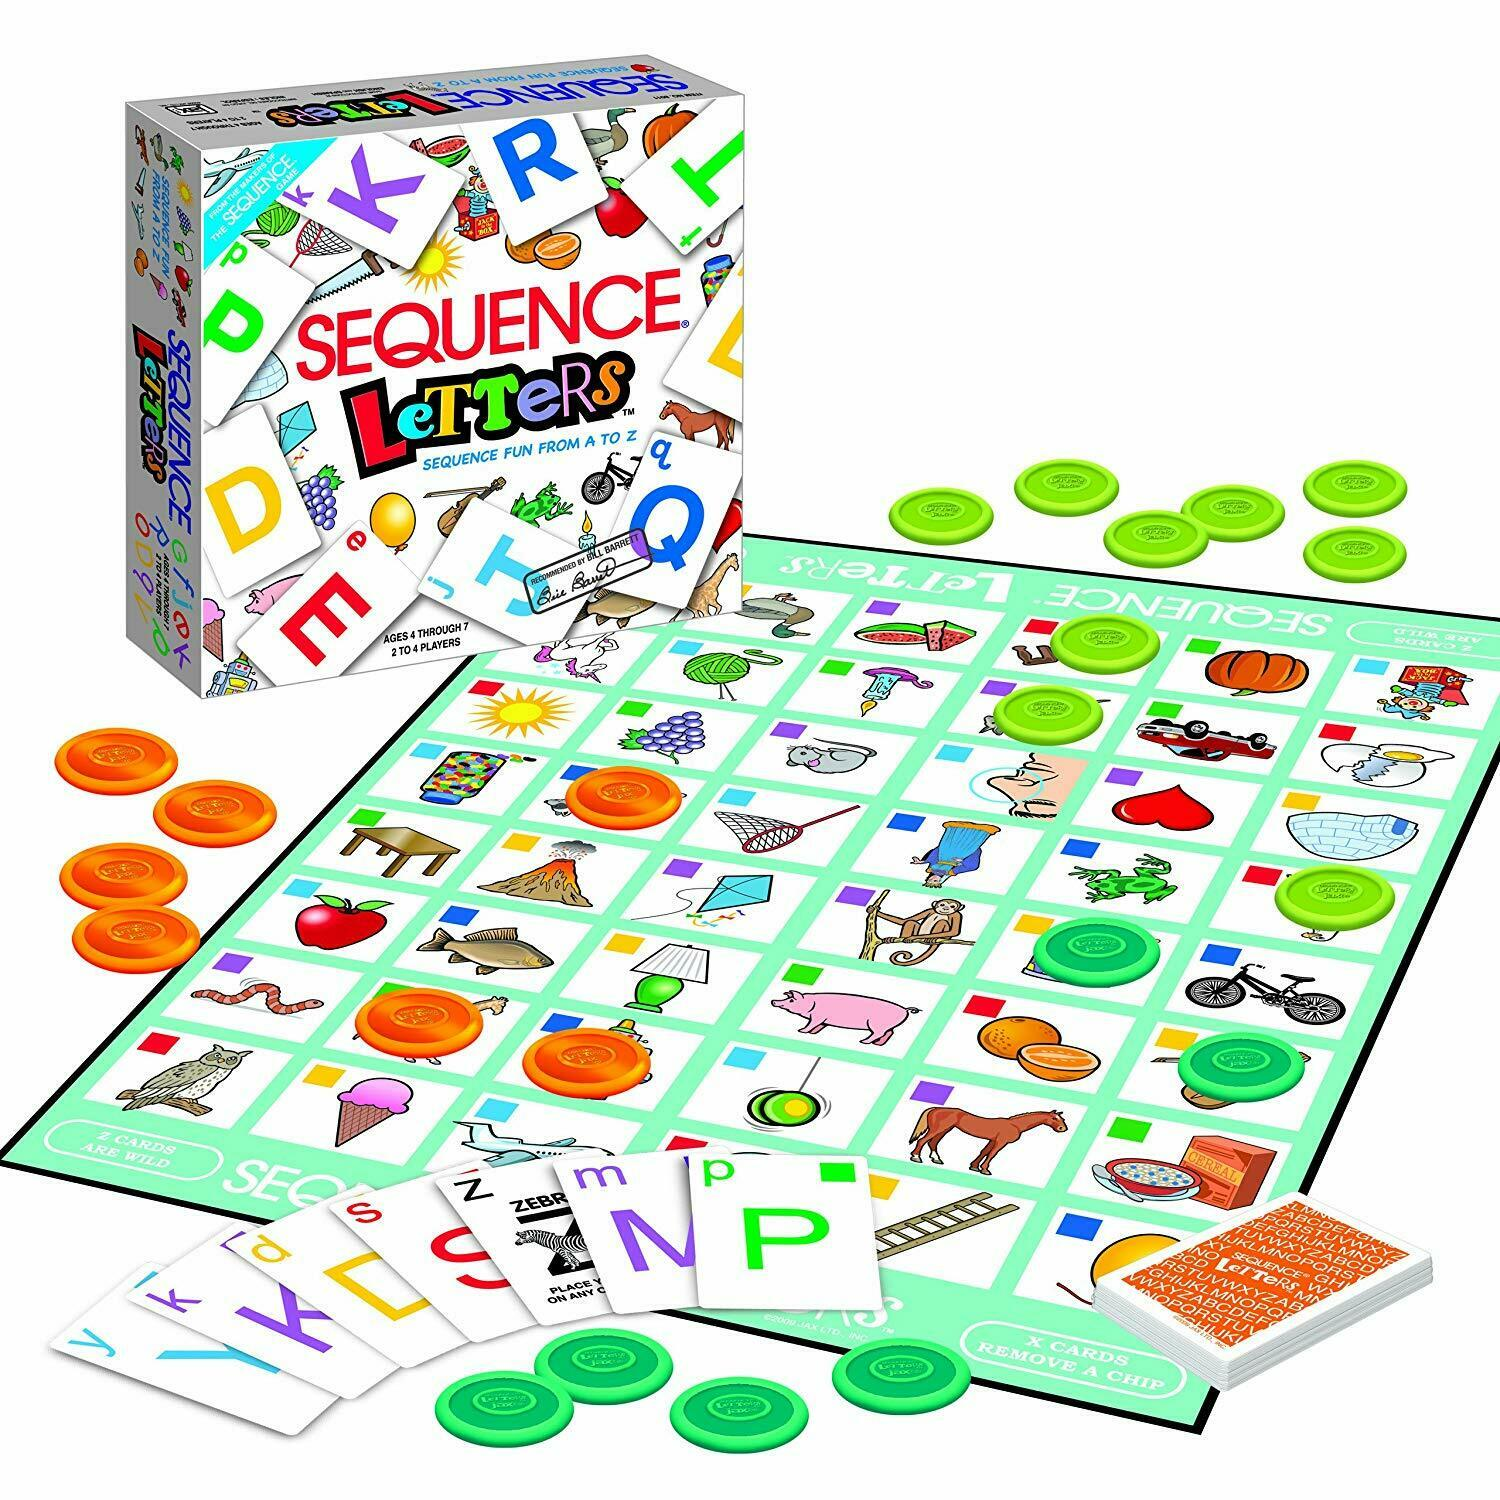 Sequence Letters Kids Educational Board Game Alphabet Learning for Age 4 5 6 7 2